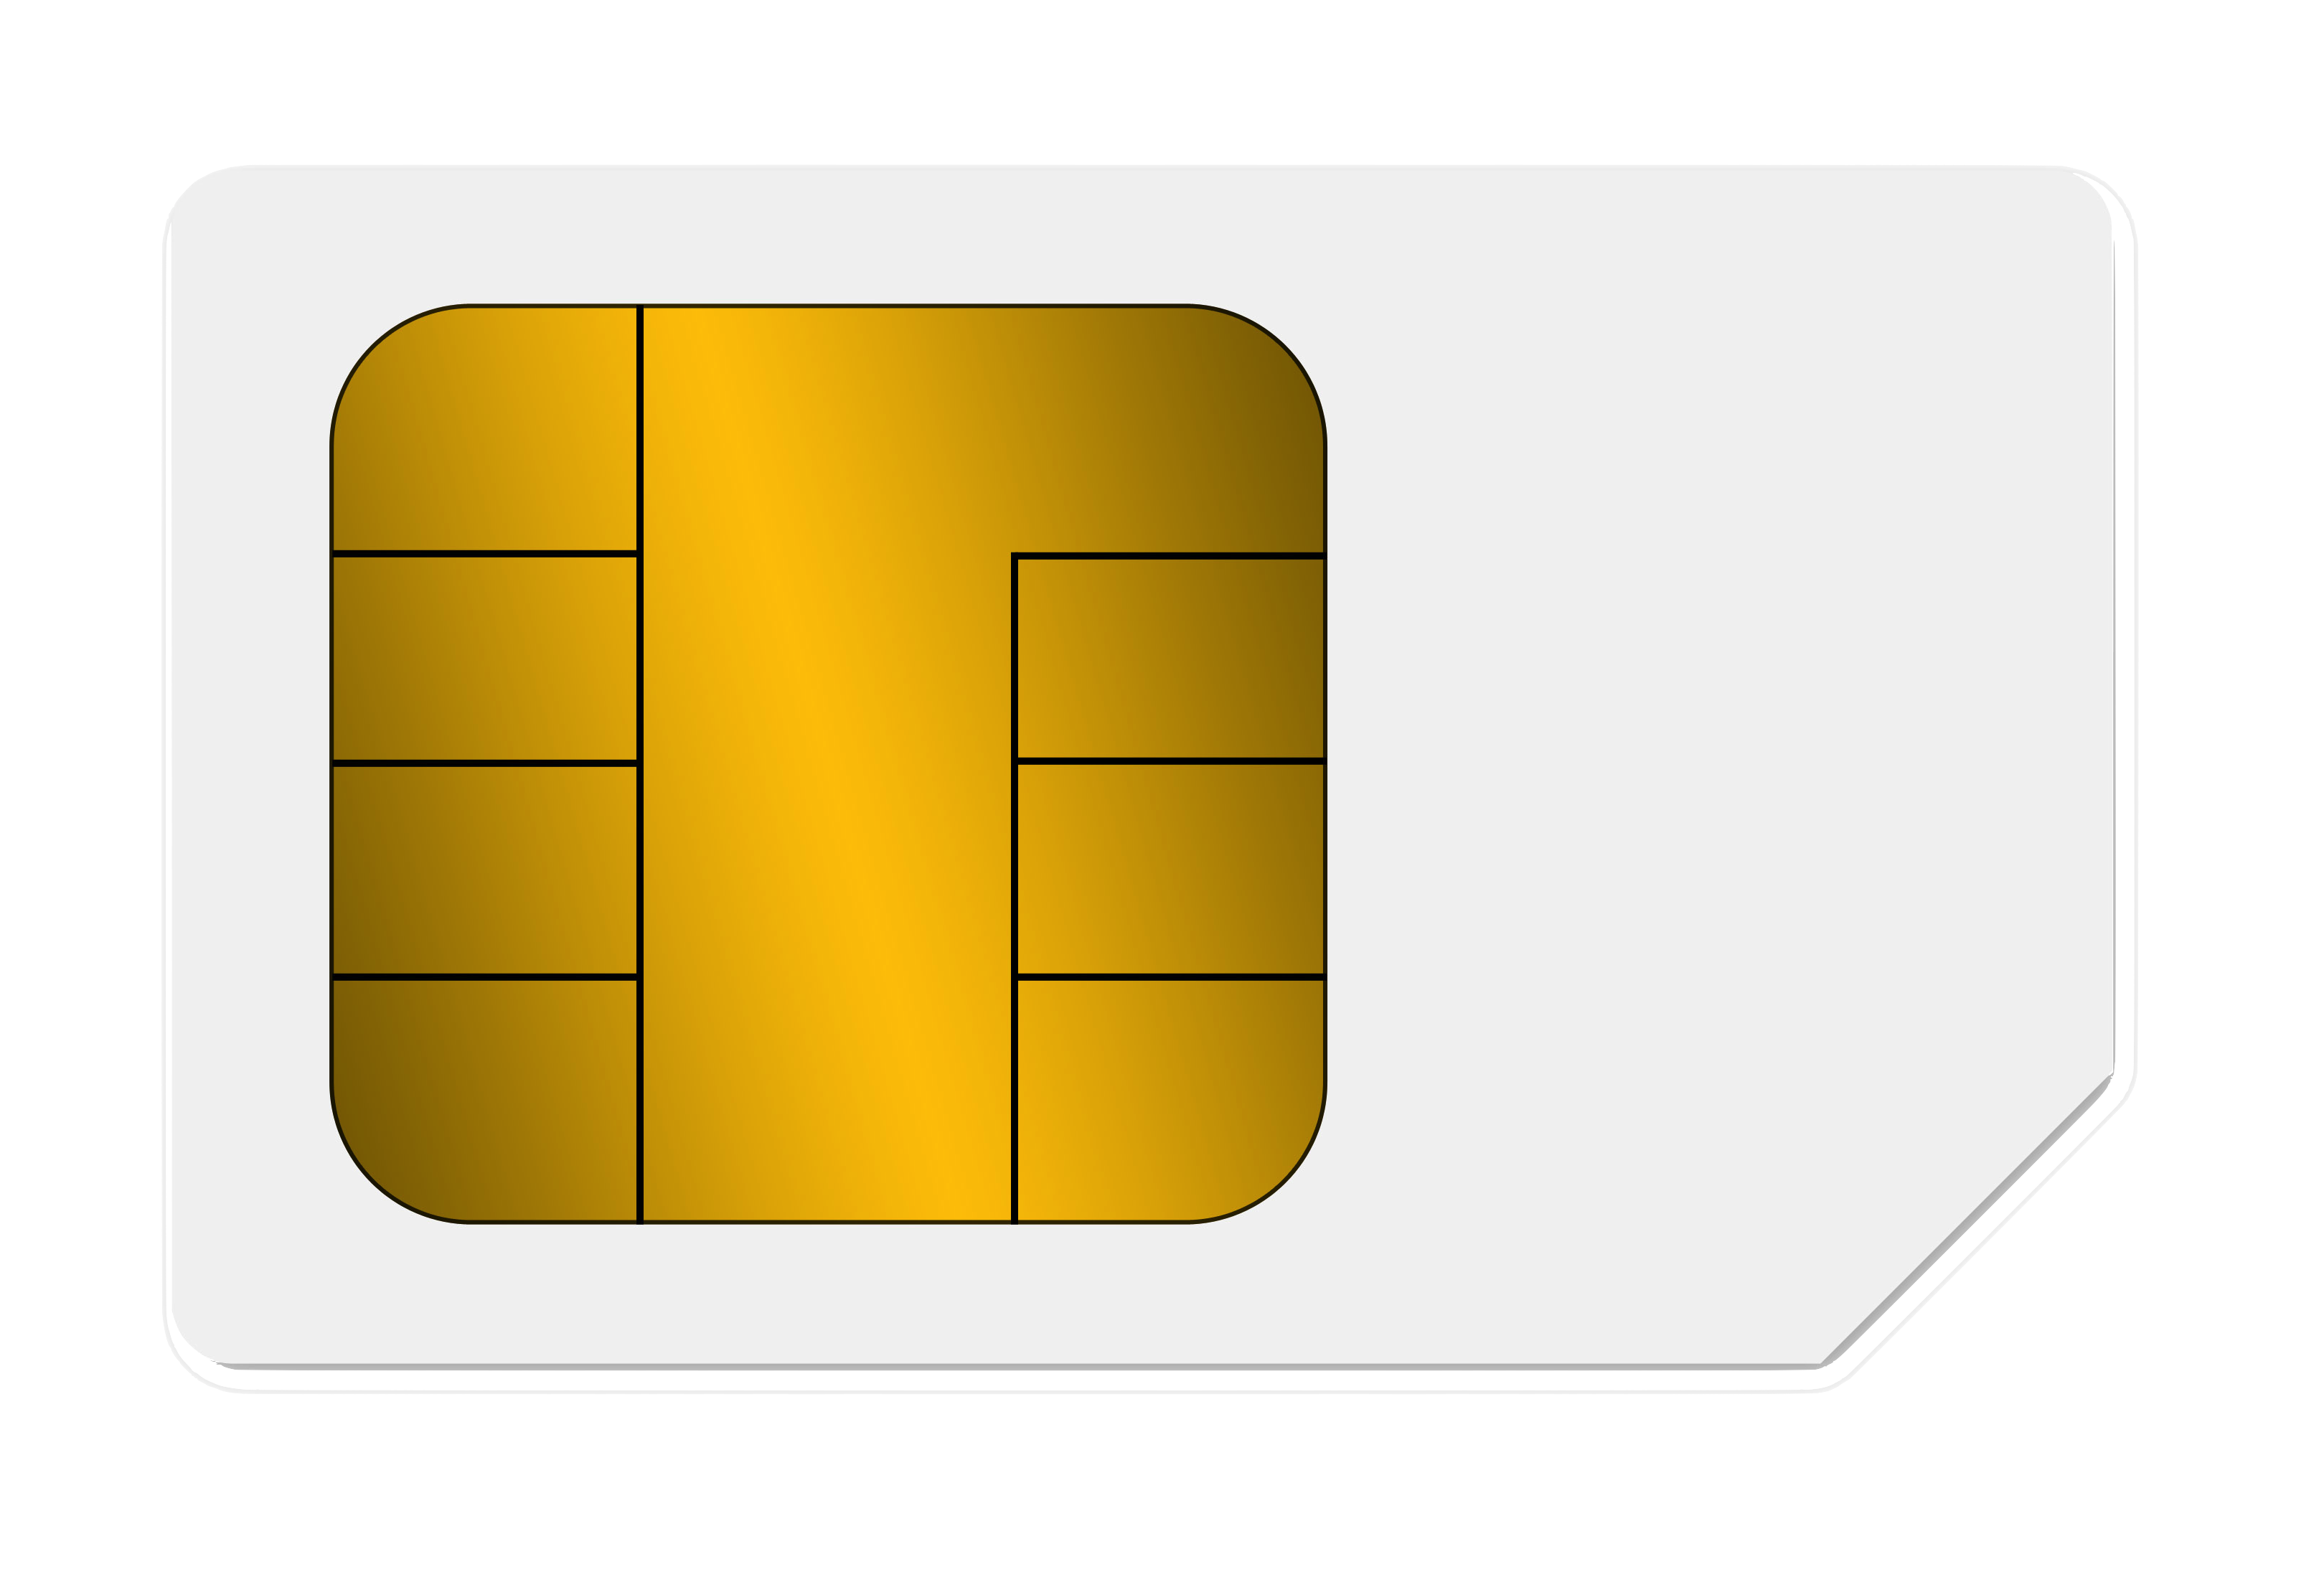 how to open sim card slot